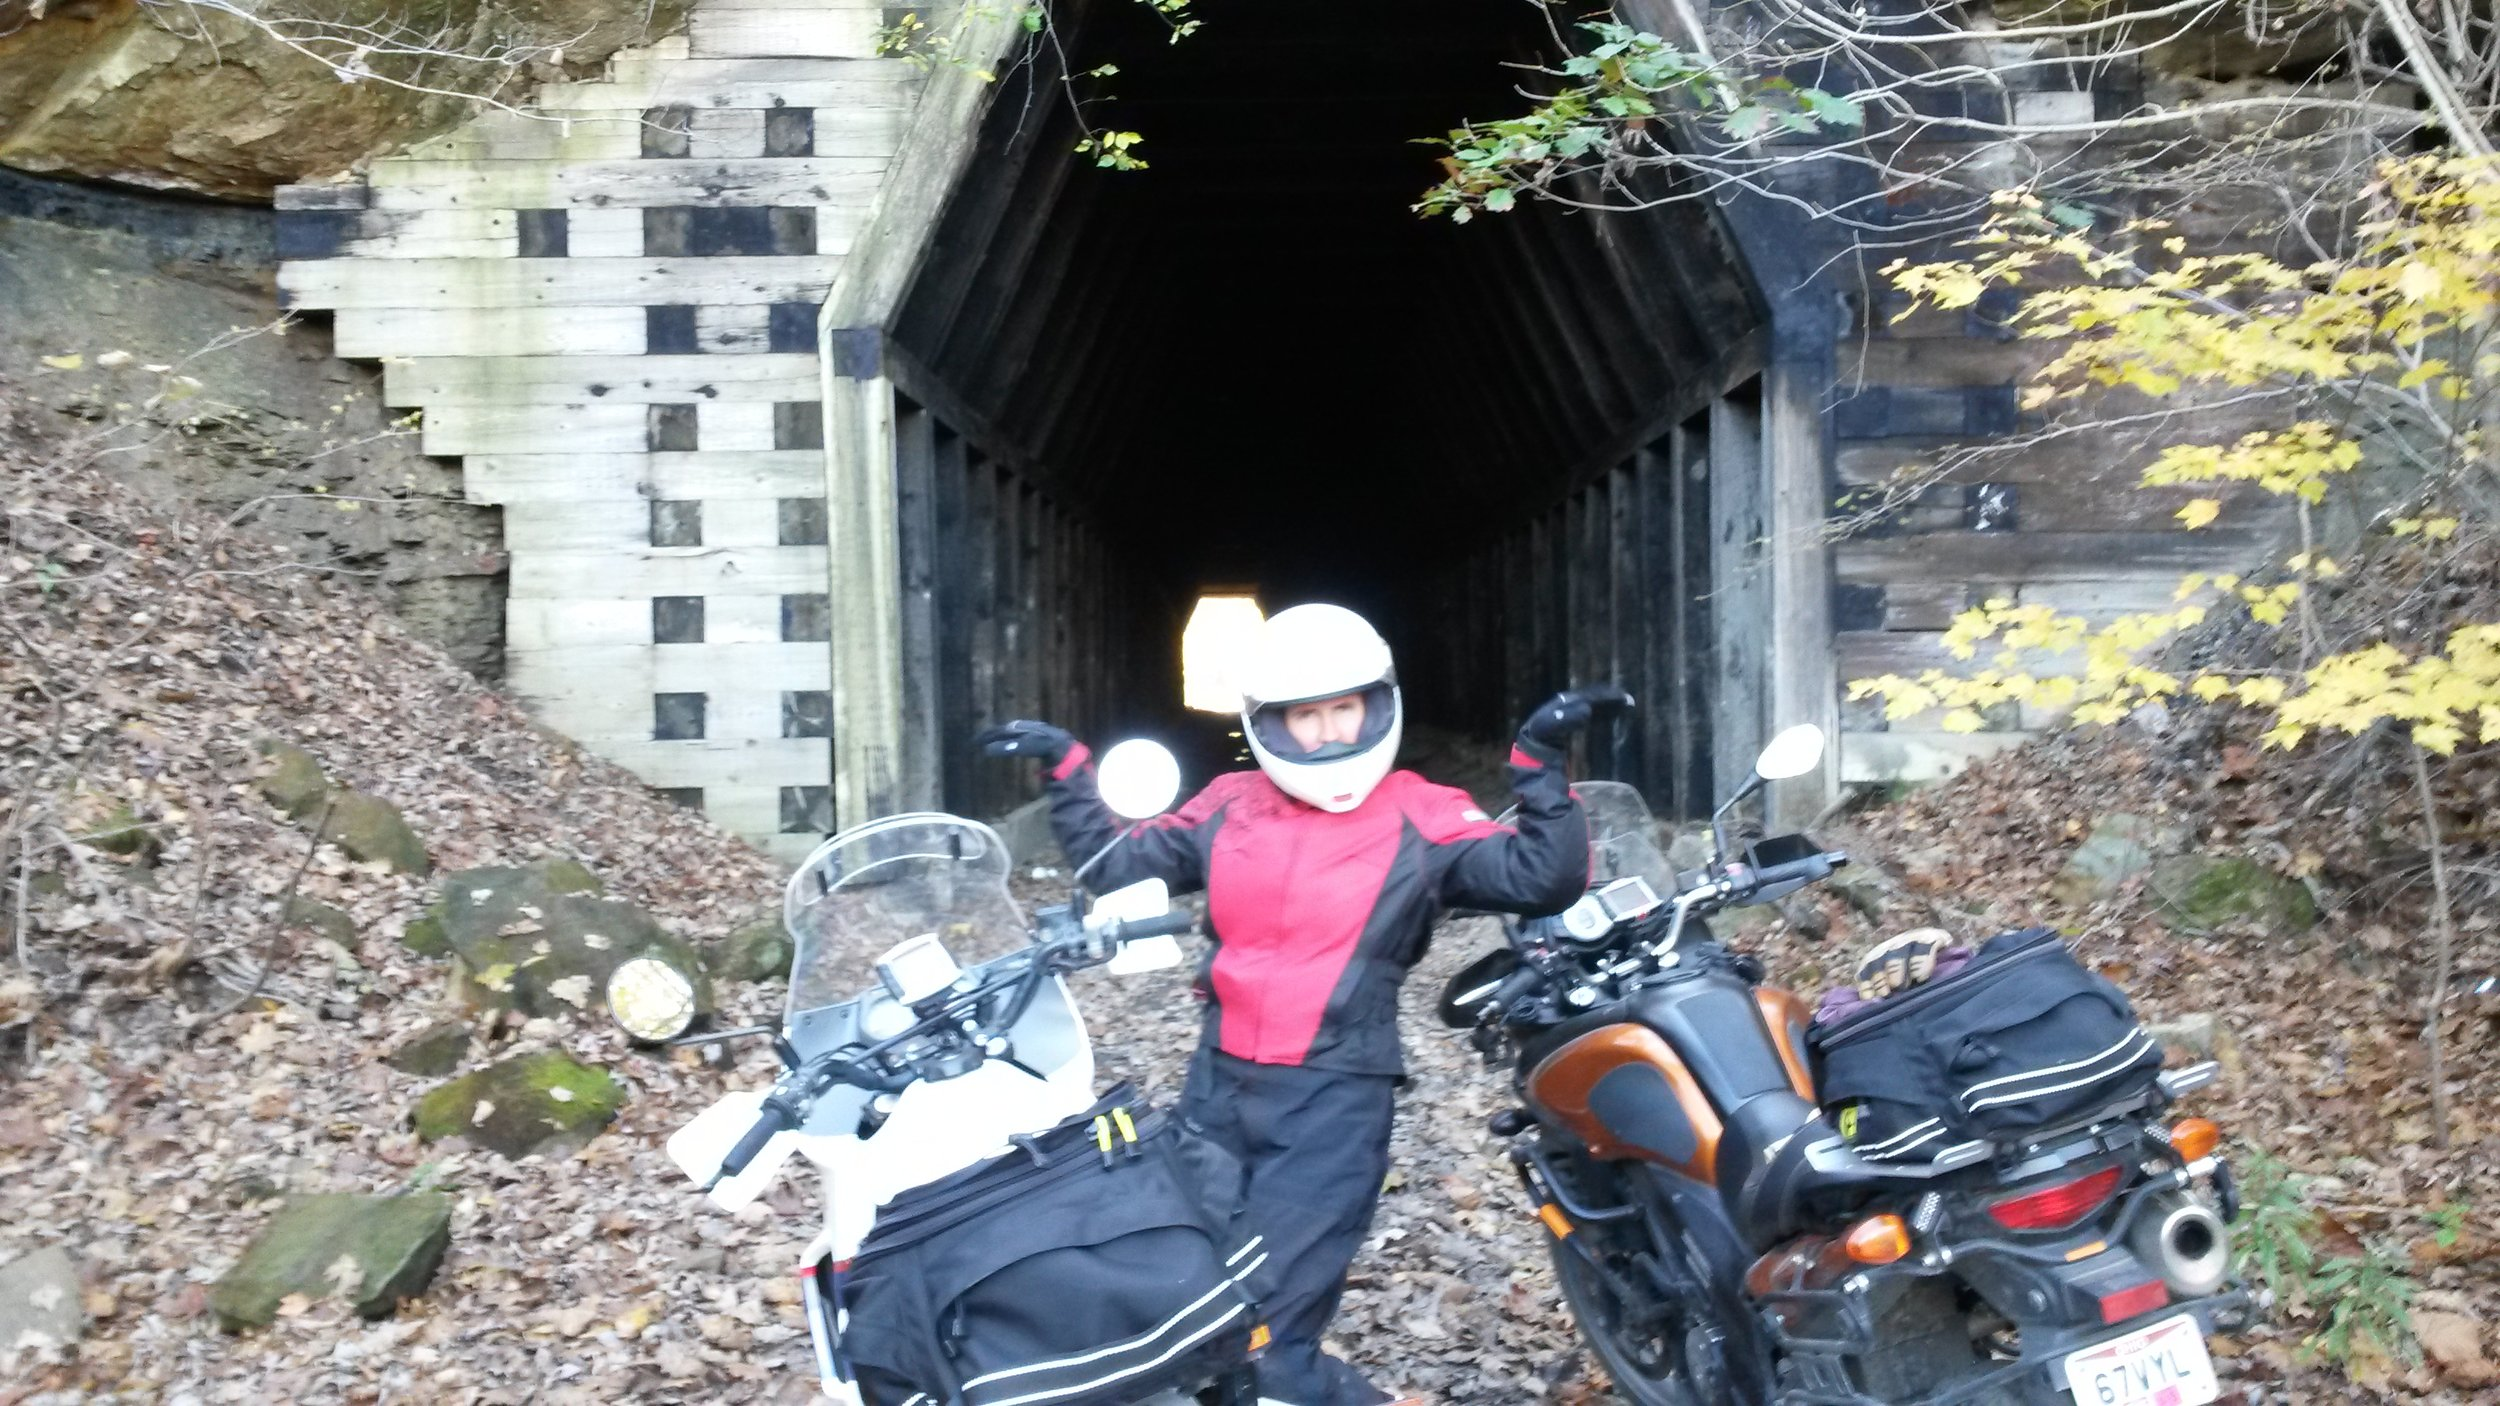 At the far end of King Hollow RR Tunnel. Slick clay, good-sized puddles, and dark as night after bright sunlight. Best experienced on foot.